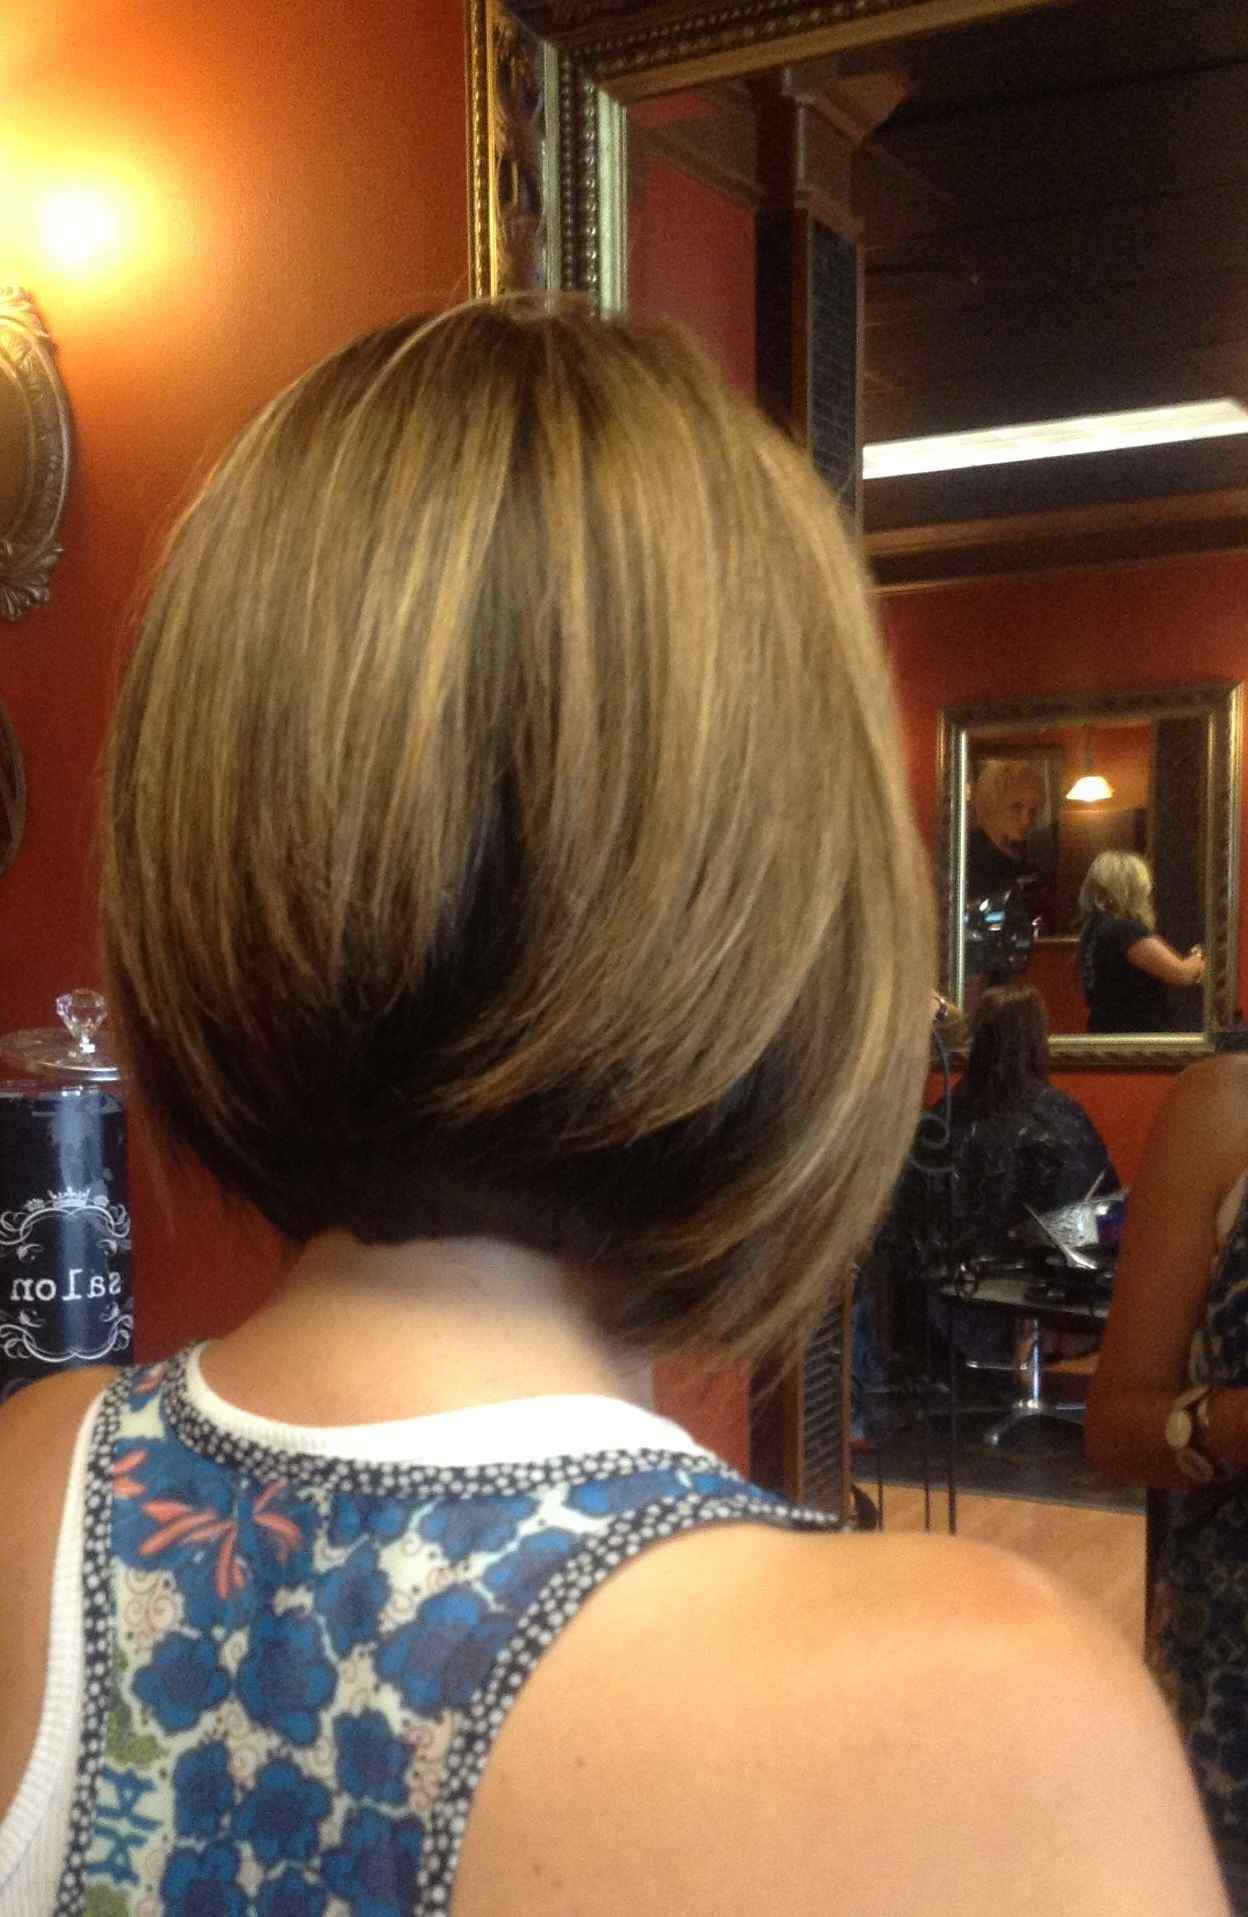 Hairstyles For Short Hair Easy Shoulder Length Straight Unique 10 Throughout Inverted Bob Short Haircuts (View 11 of 25)